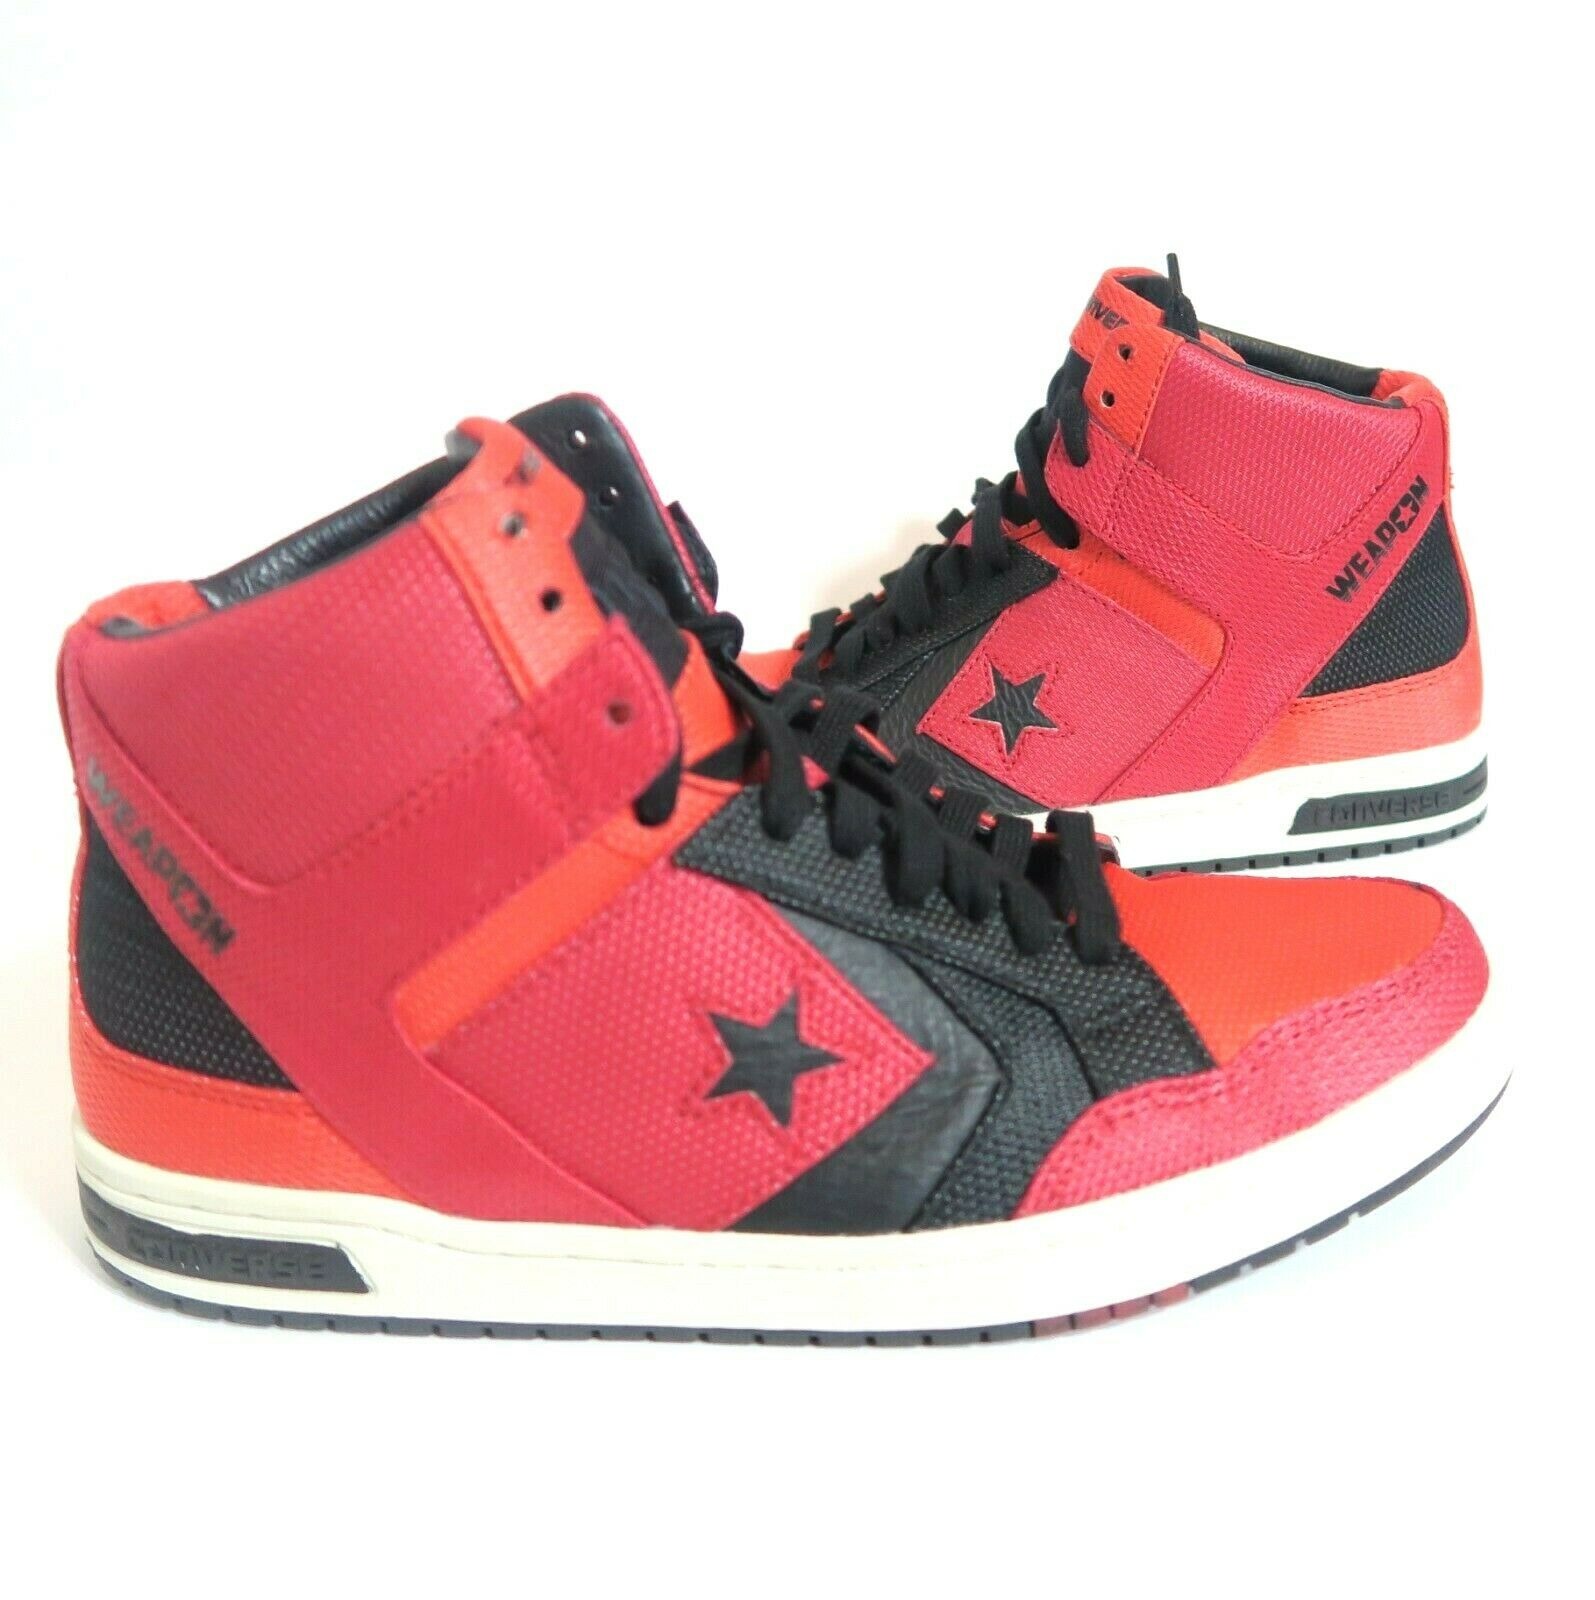 New Converse Weapon Mid Top Ski Patrol Red Black Sneaker 132828C Mens Size 10